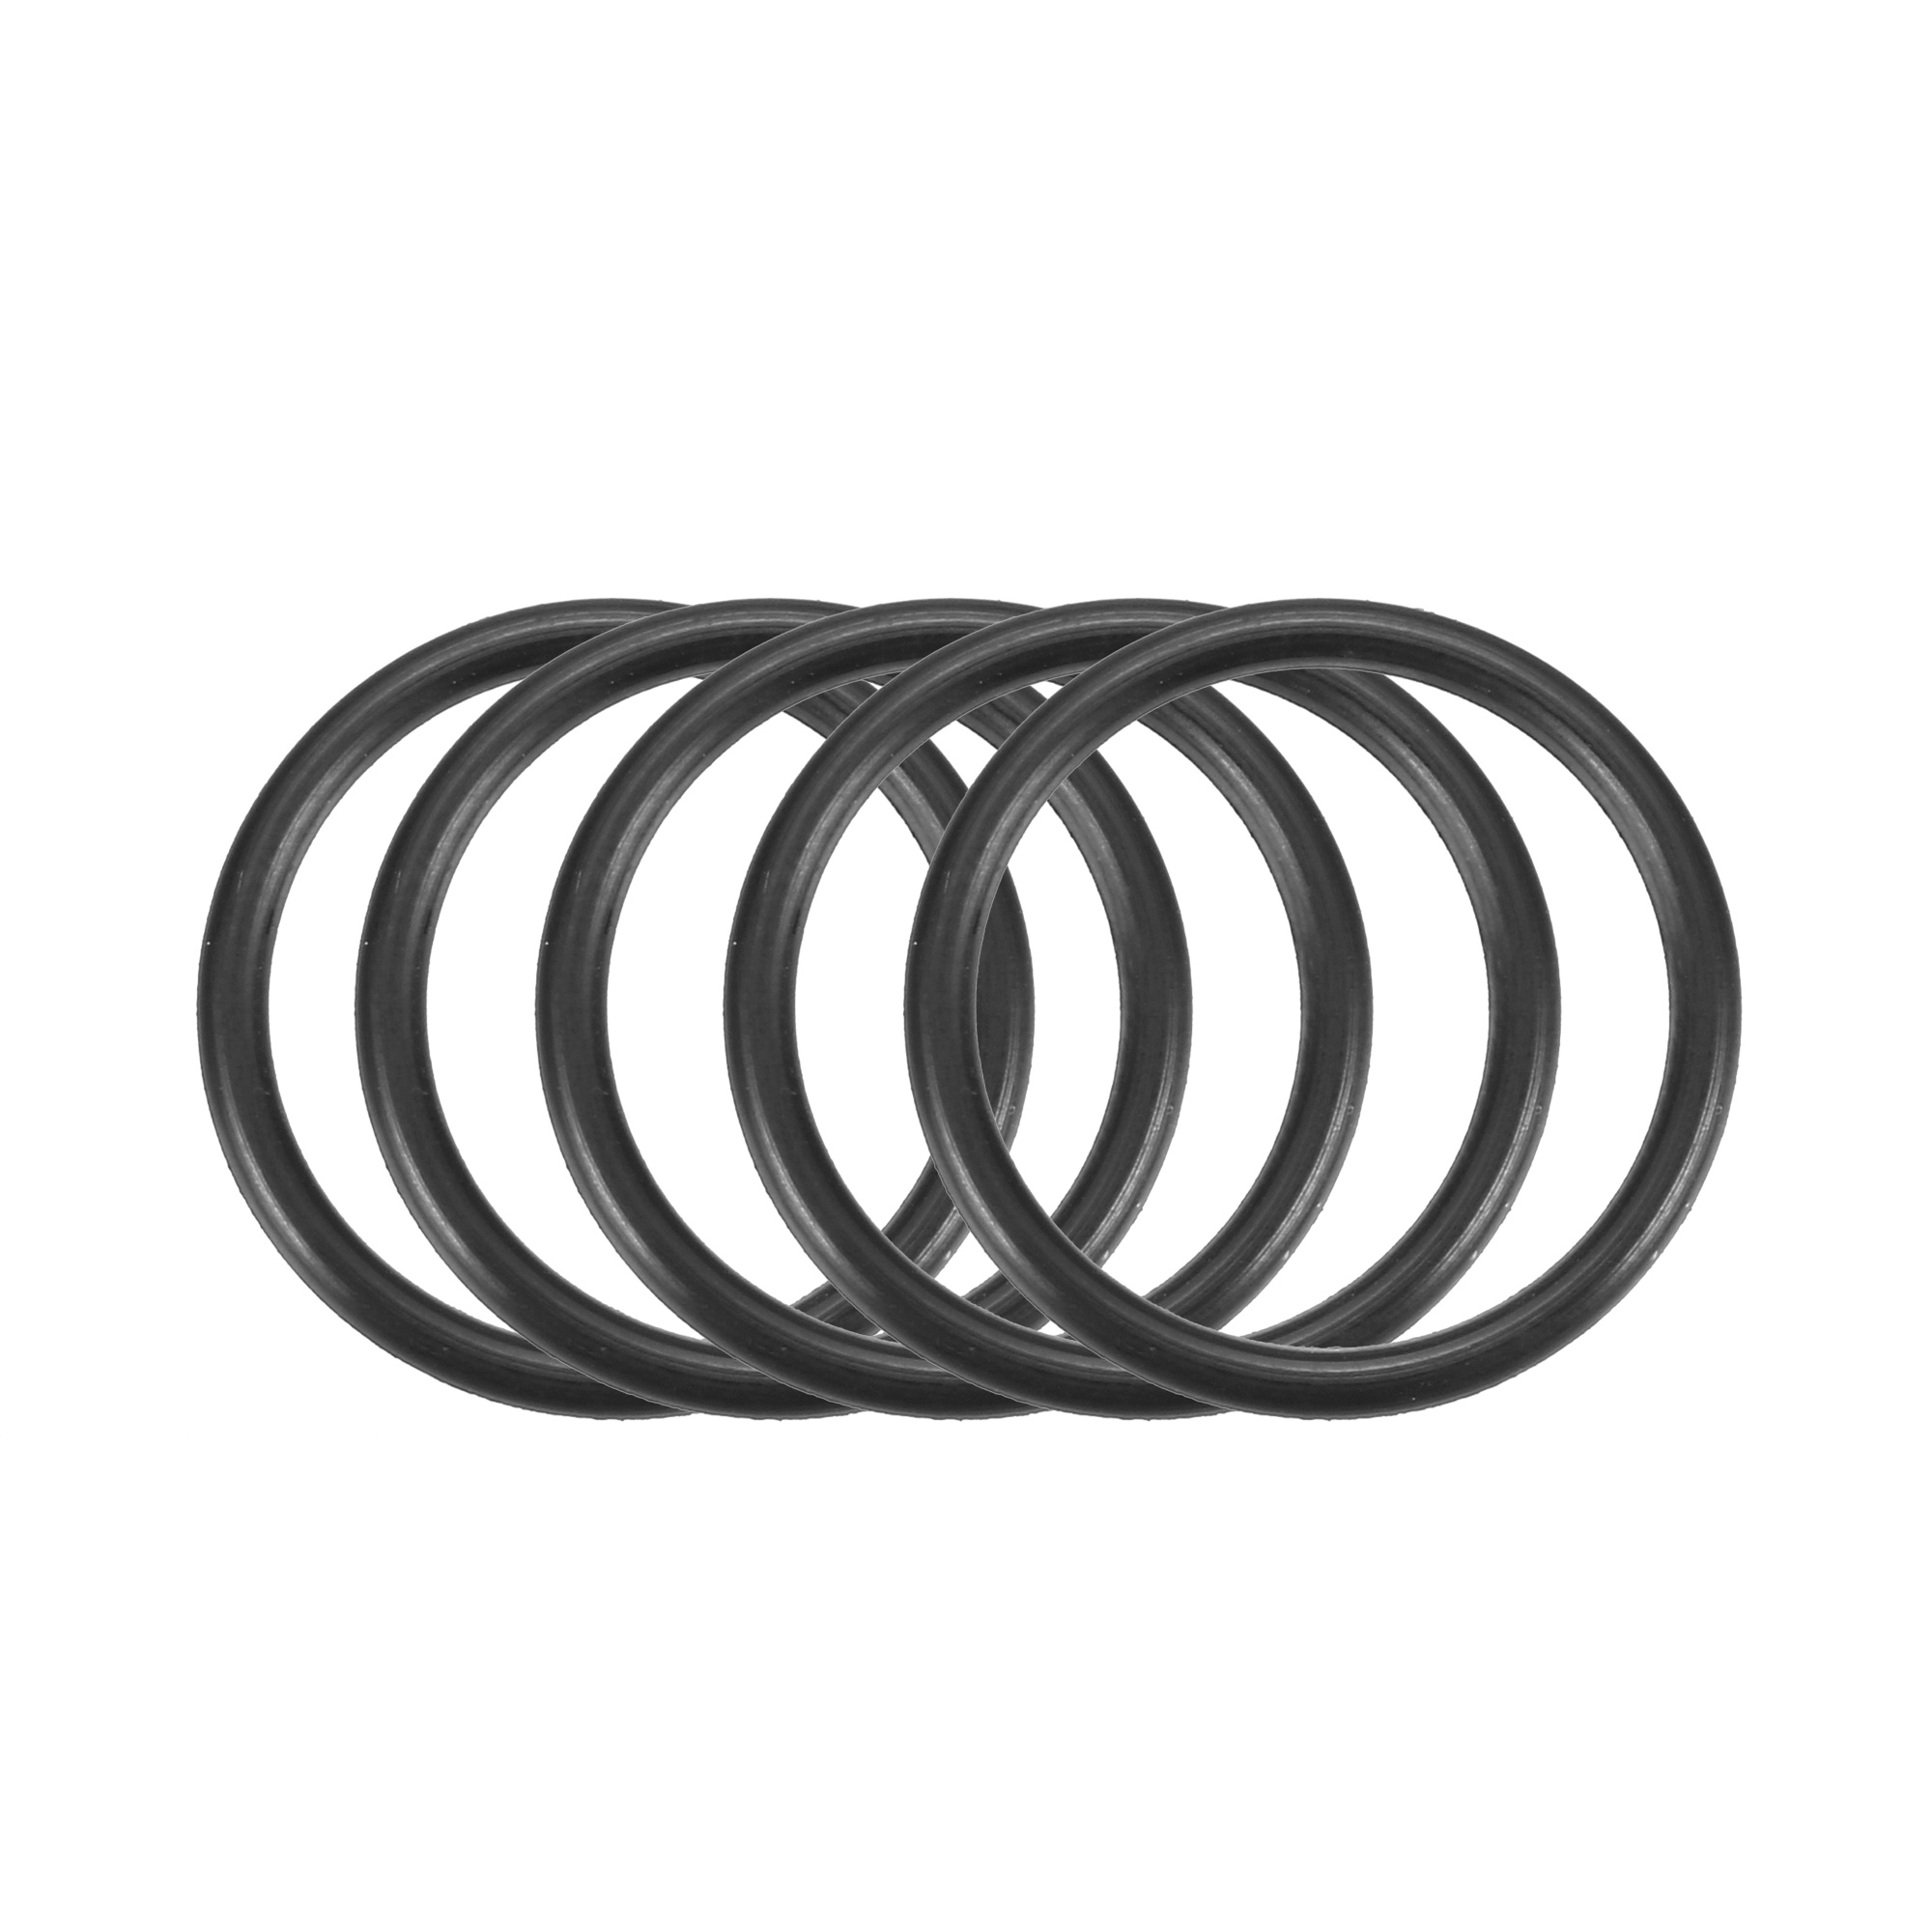 30pcs Black Nitrile Butadiene Rubber NBR O-Ring 21mm Outer Dia 1.8mm Width